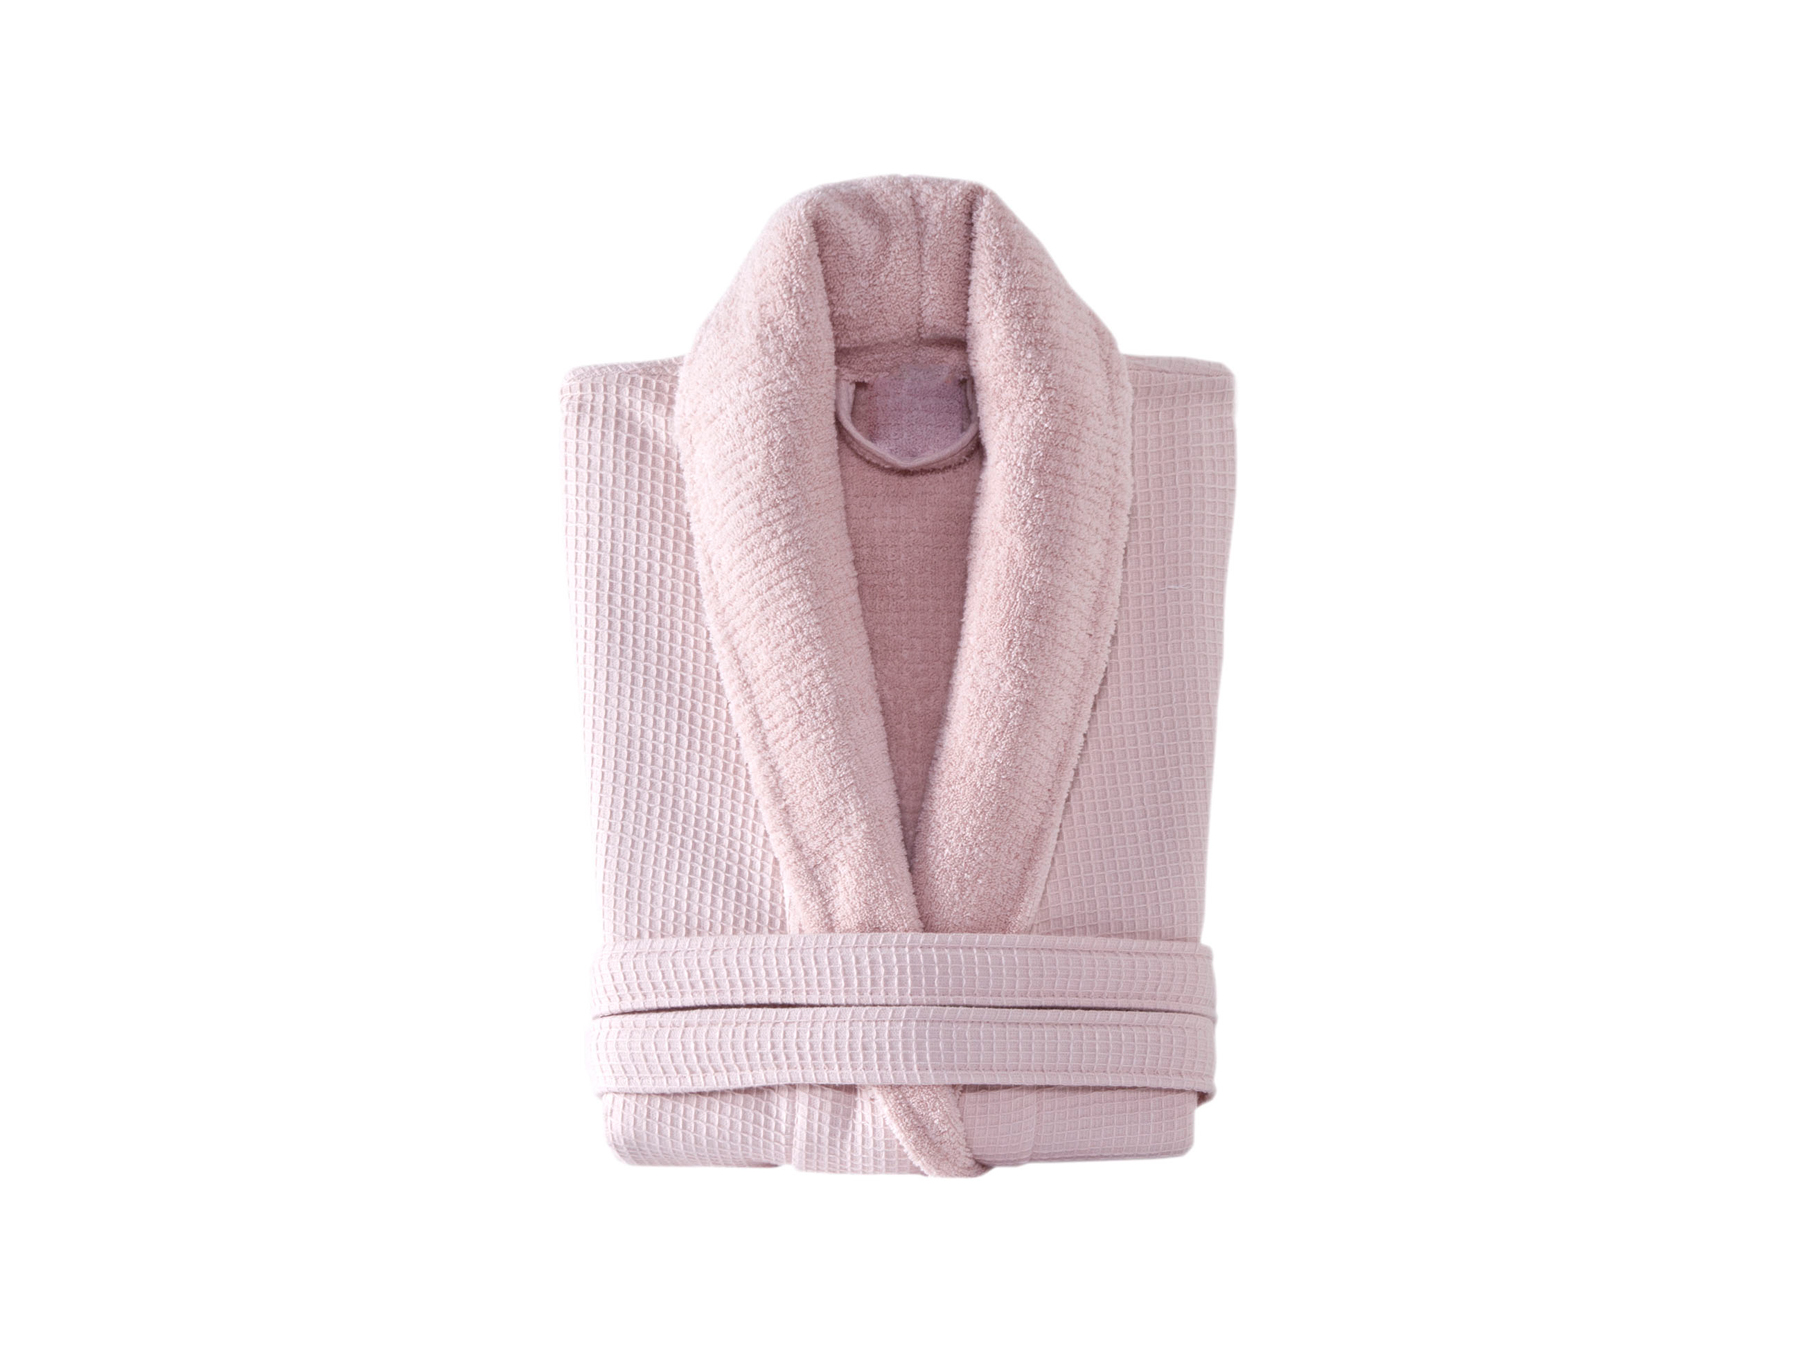 Linens & More Turkish Cotton Bathrobe in Dusty Pink available at McKenzie & Willis